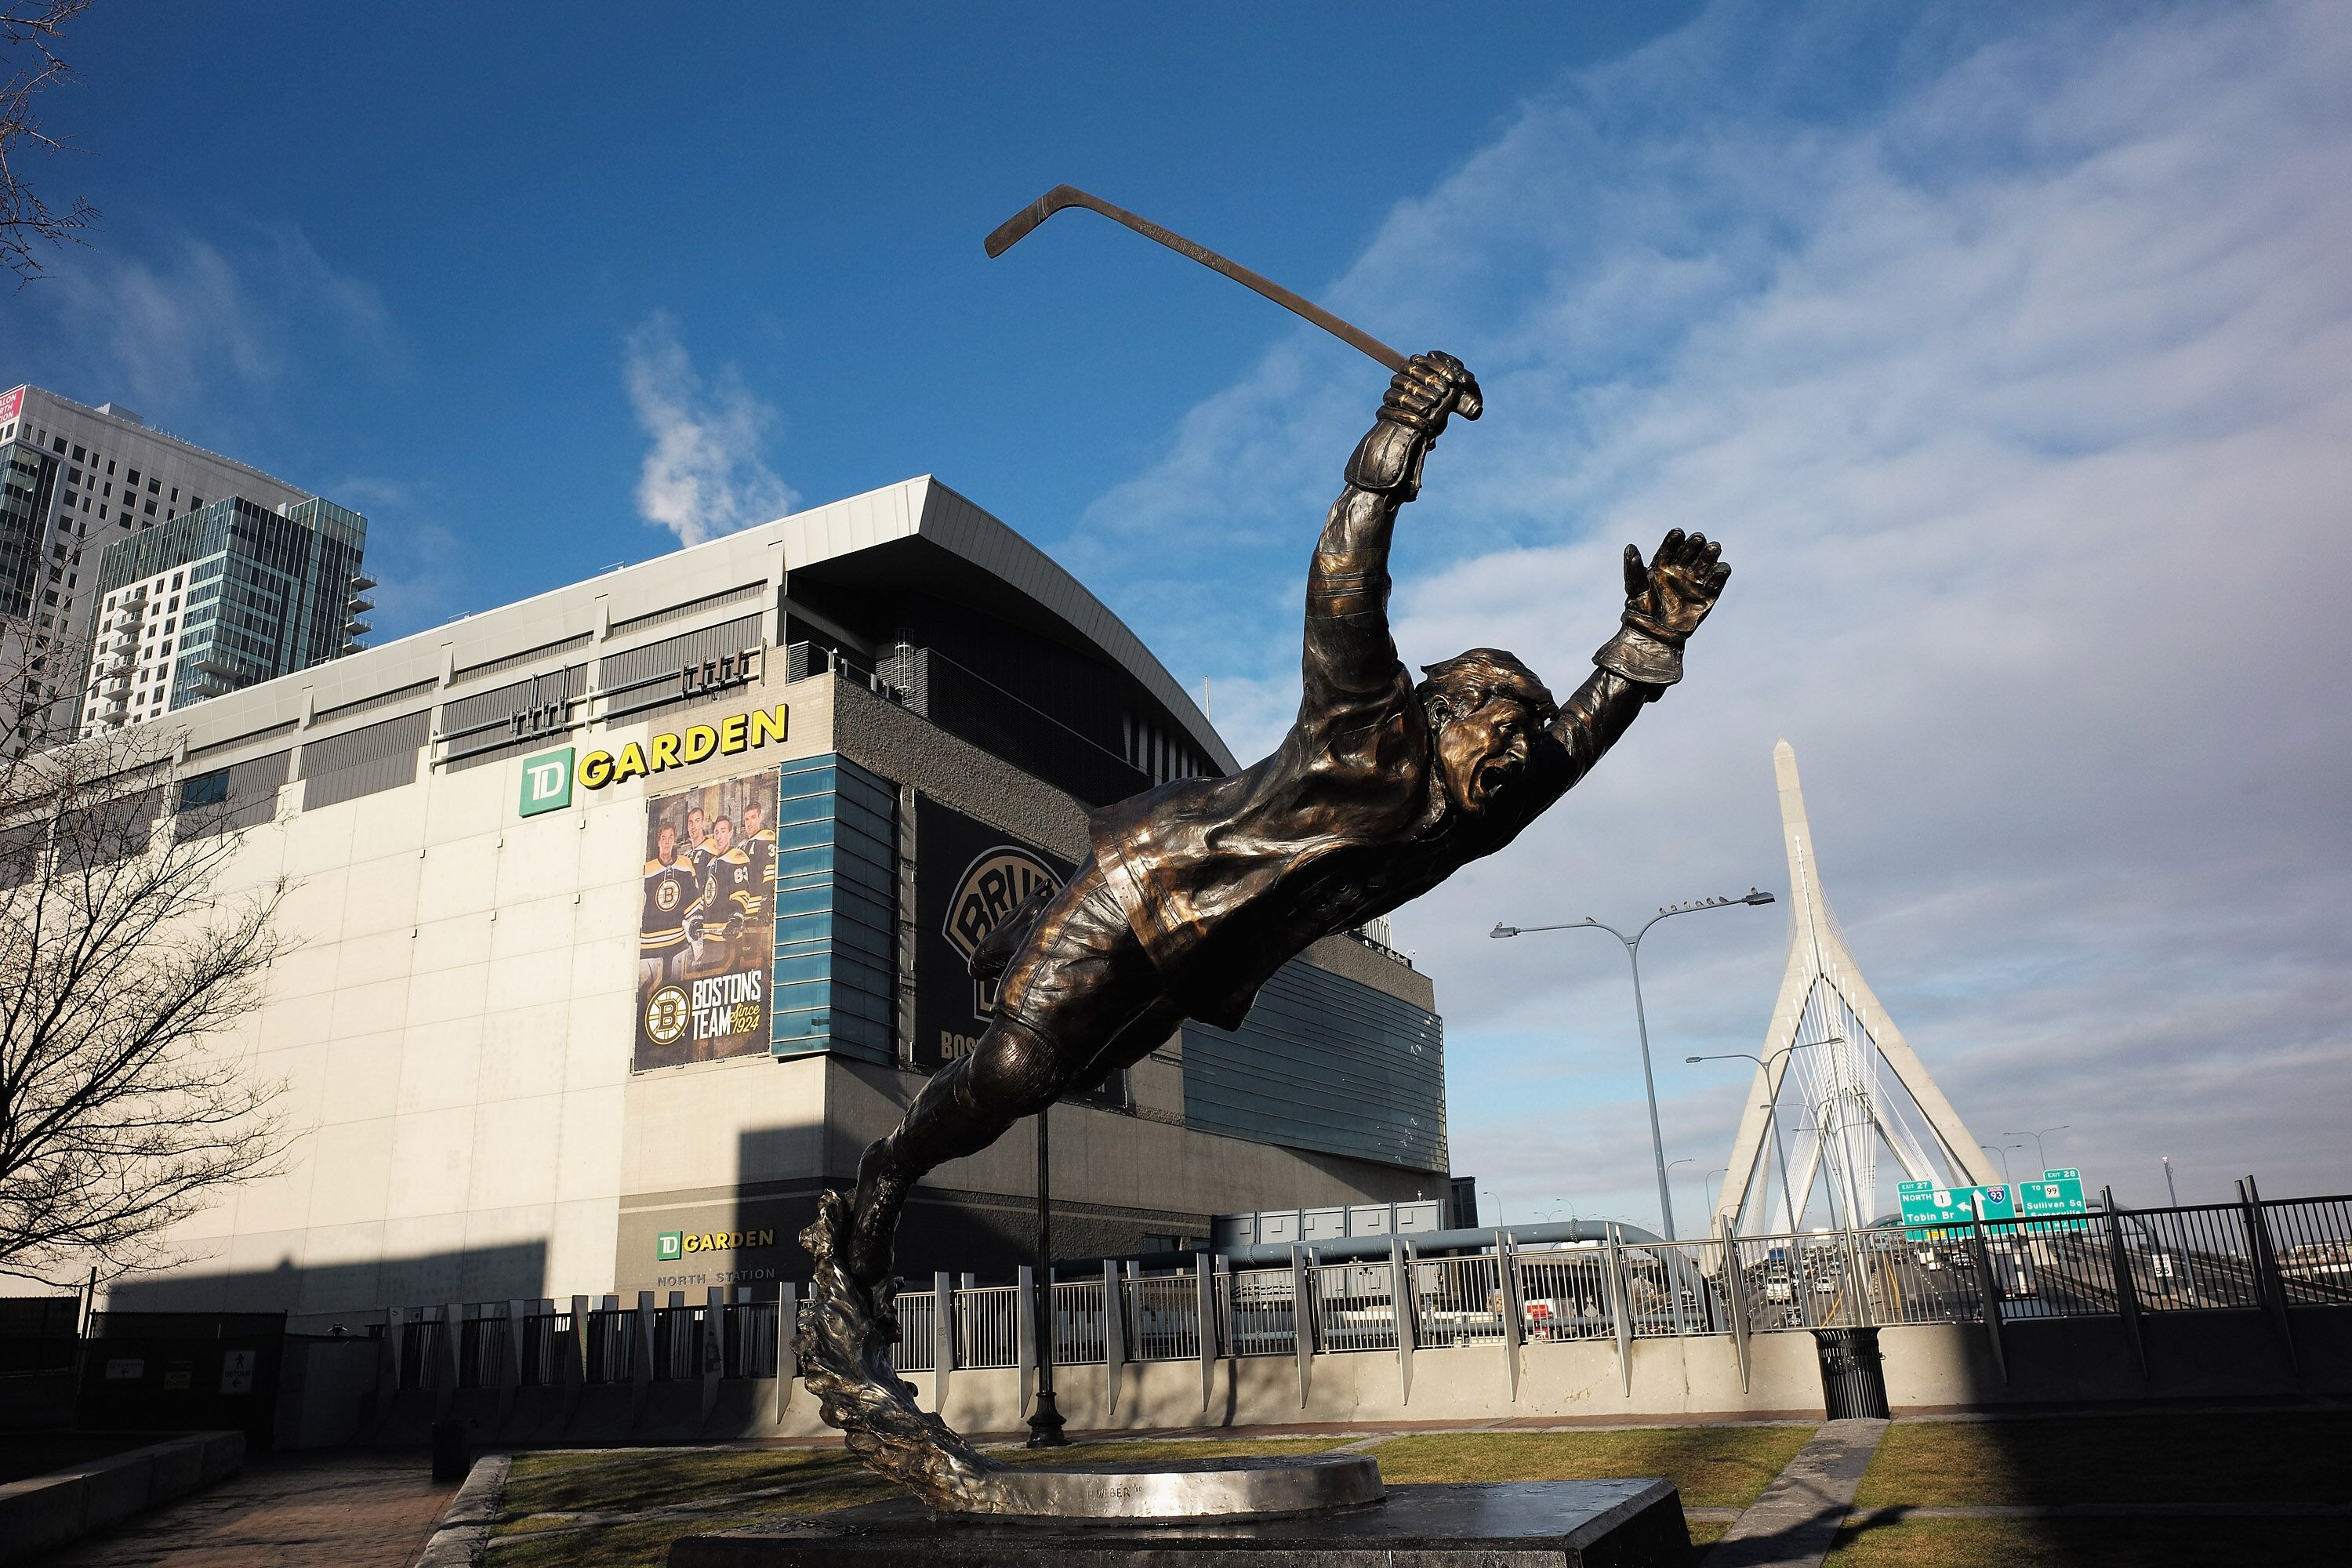 Boston Bruins: What are our past players up to now? (Part One)